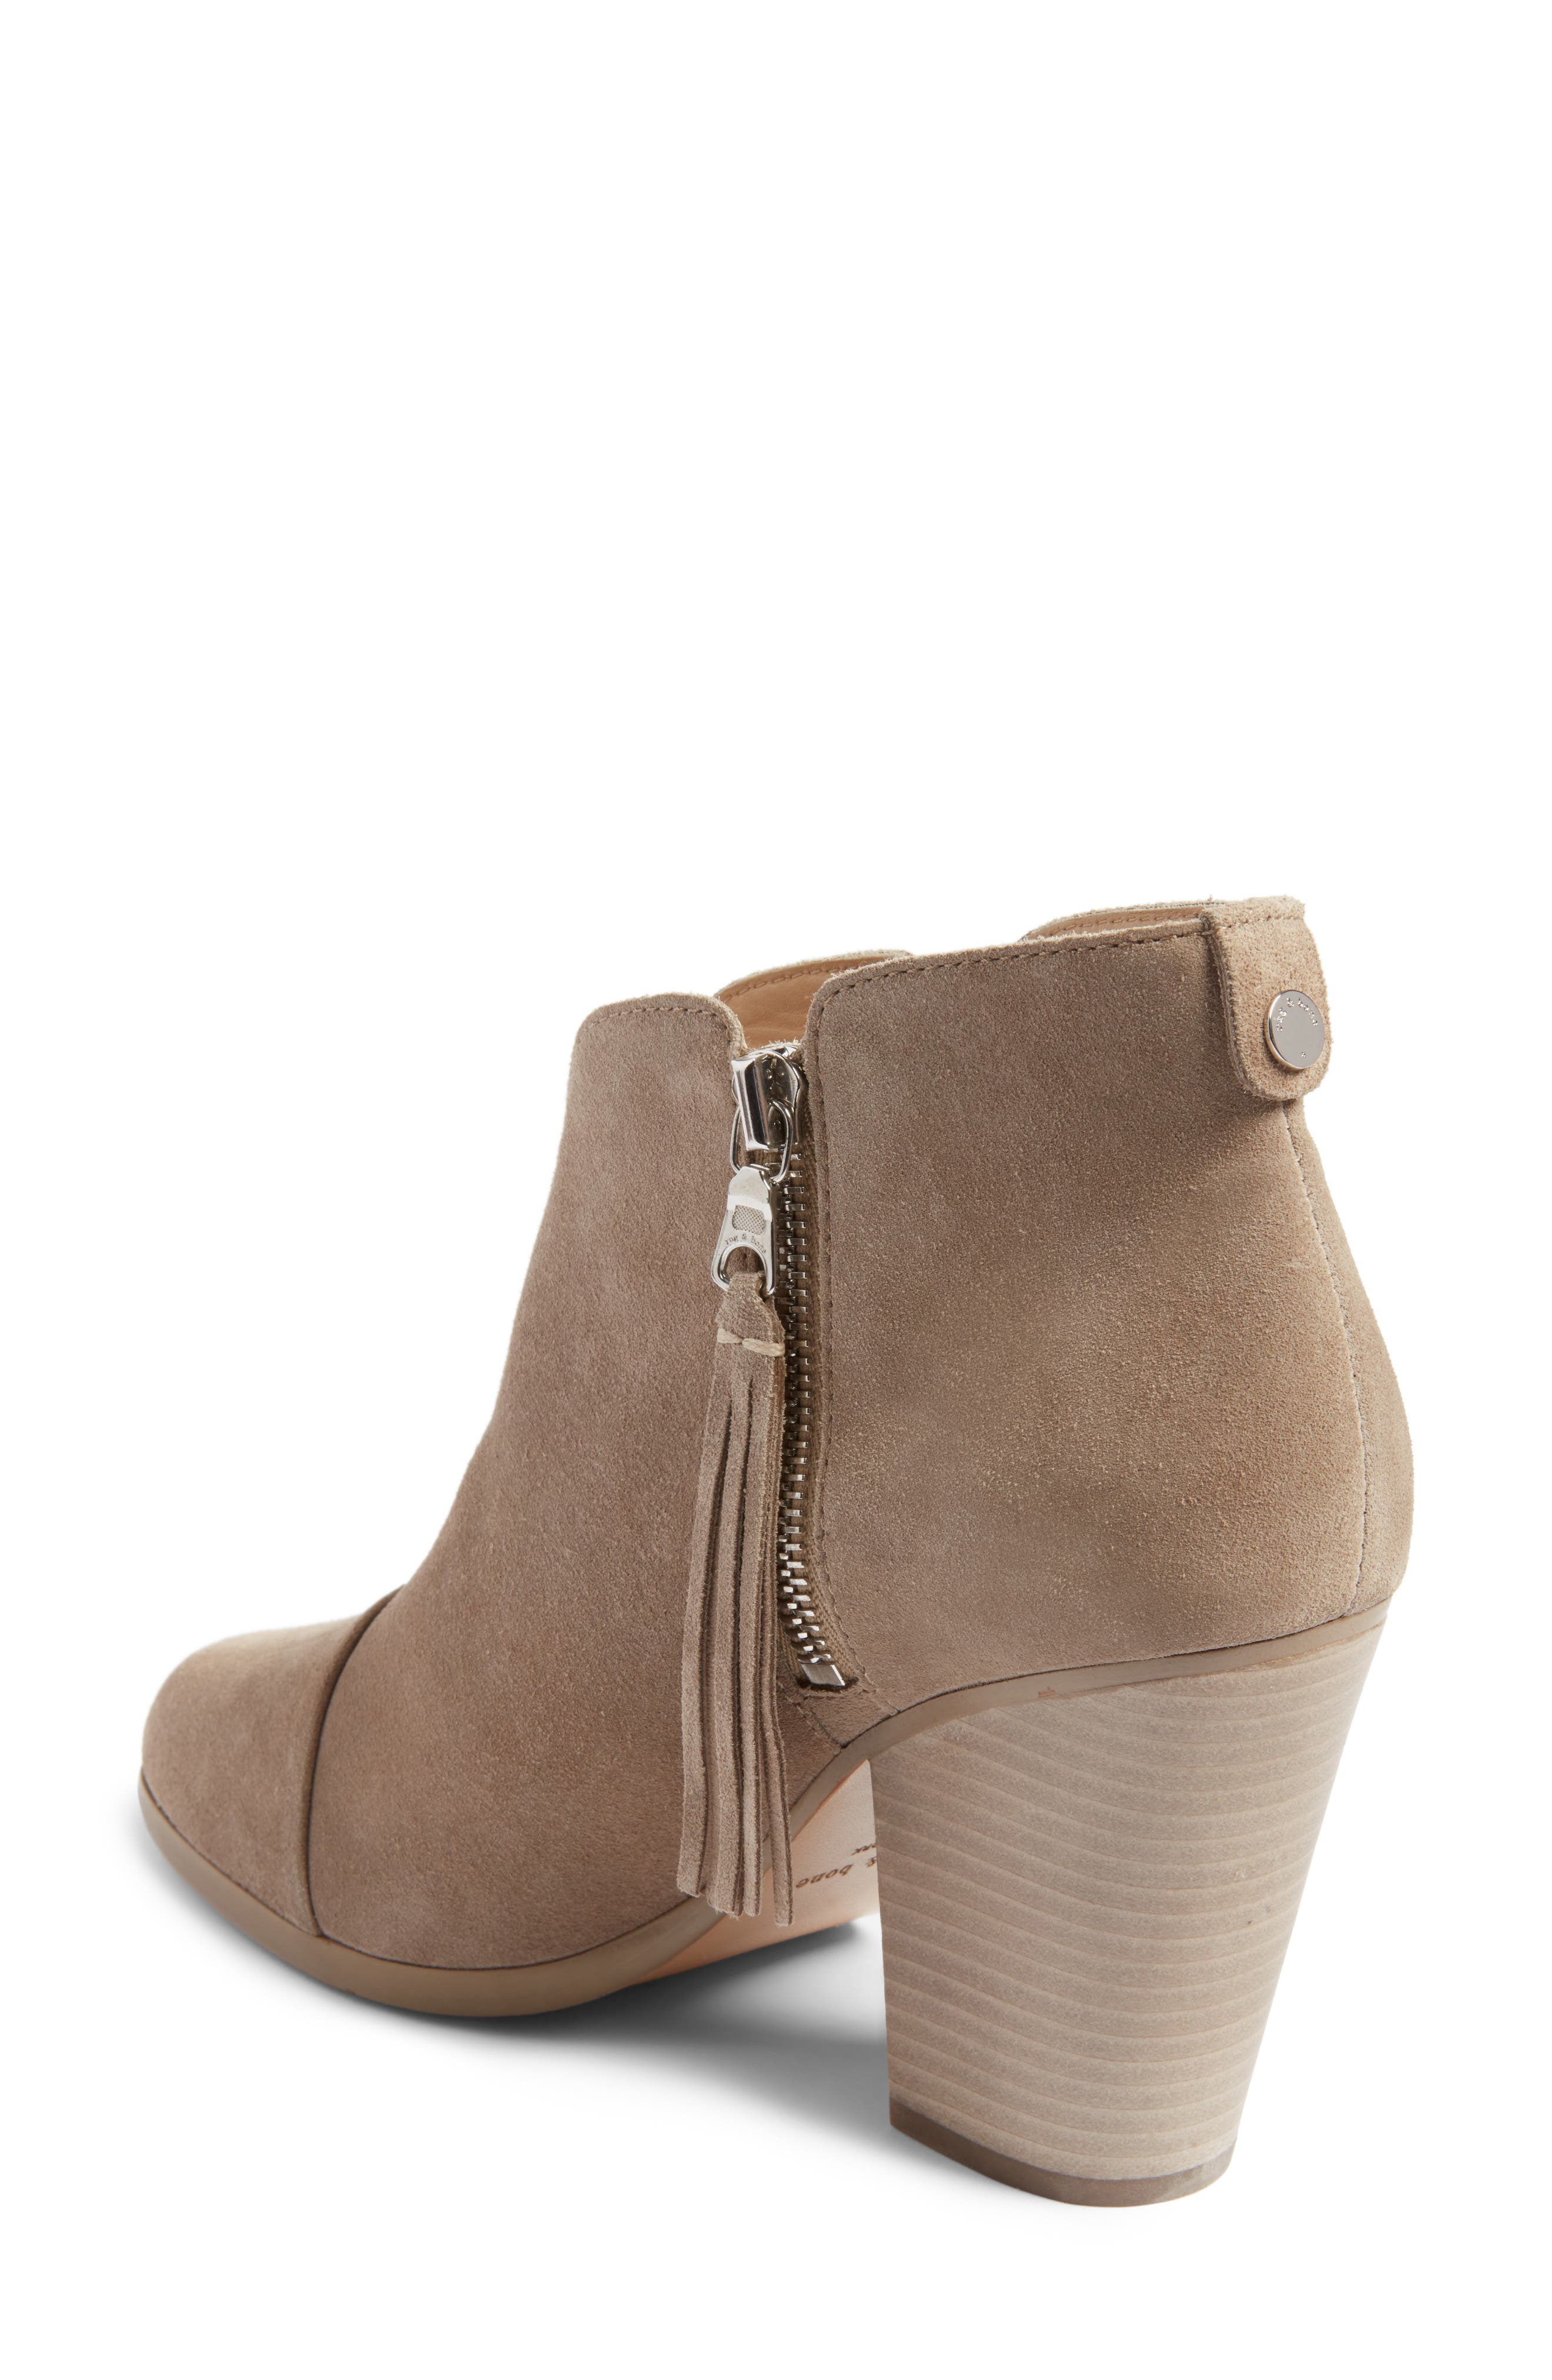 Alternate Image 2  - rag & bone Margot Fringe Cap Toe Bootie (Women)